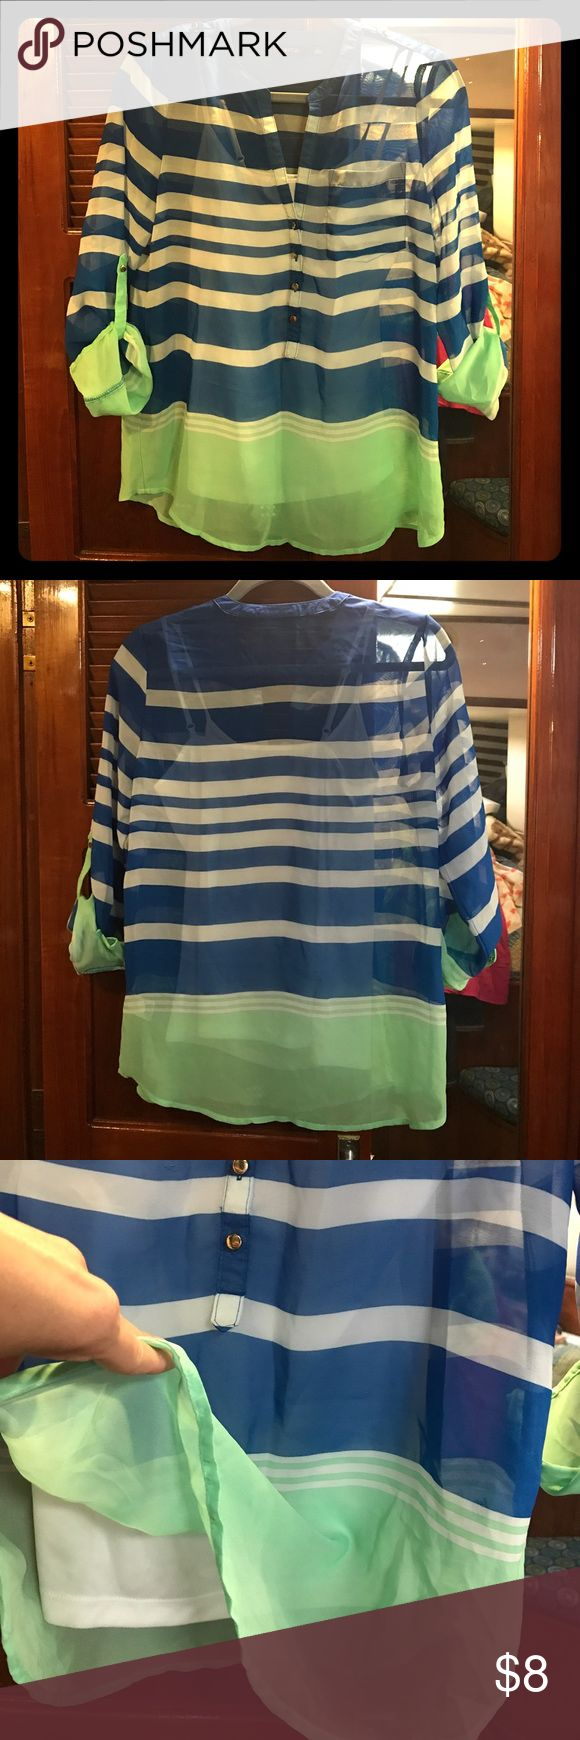 APT9 Women's Top Striped 3/4 sleeve top with built-in camisole. Great condition, only worn a few times. No stains, rips or tears. Has gold buttons down the front & on shoulders for a faux lapel look. Very trendy and nautical looking. Apt. 9 Tops Blouses